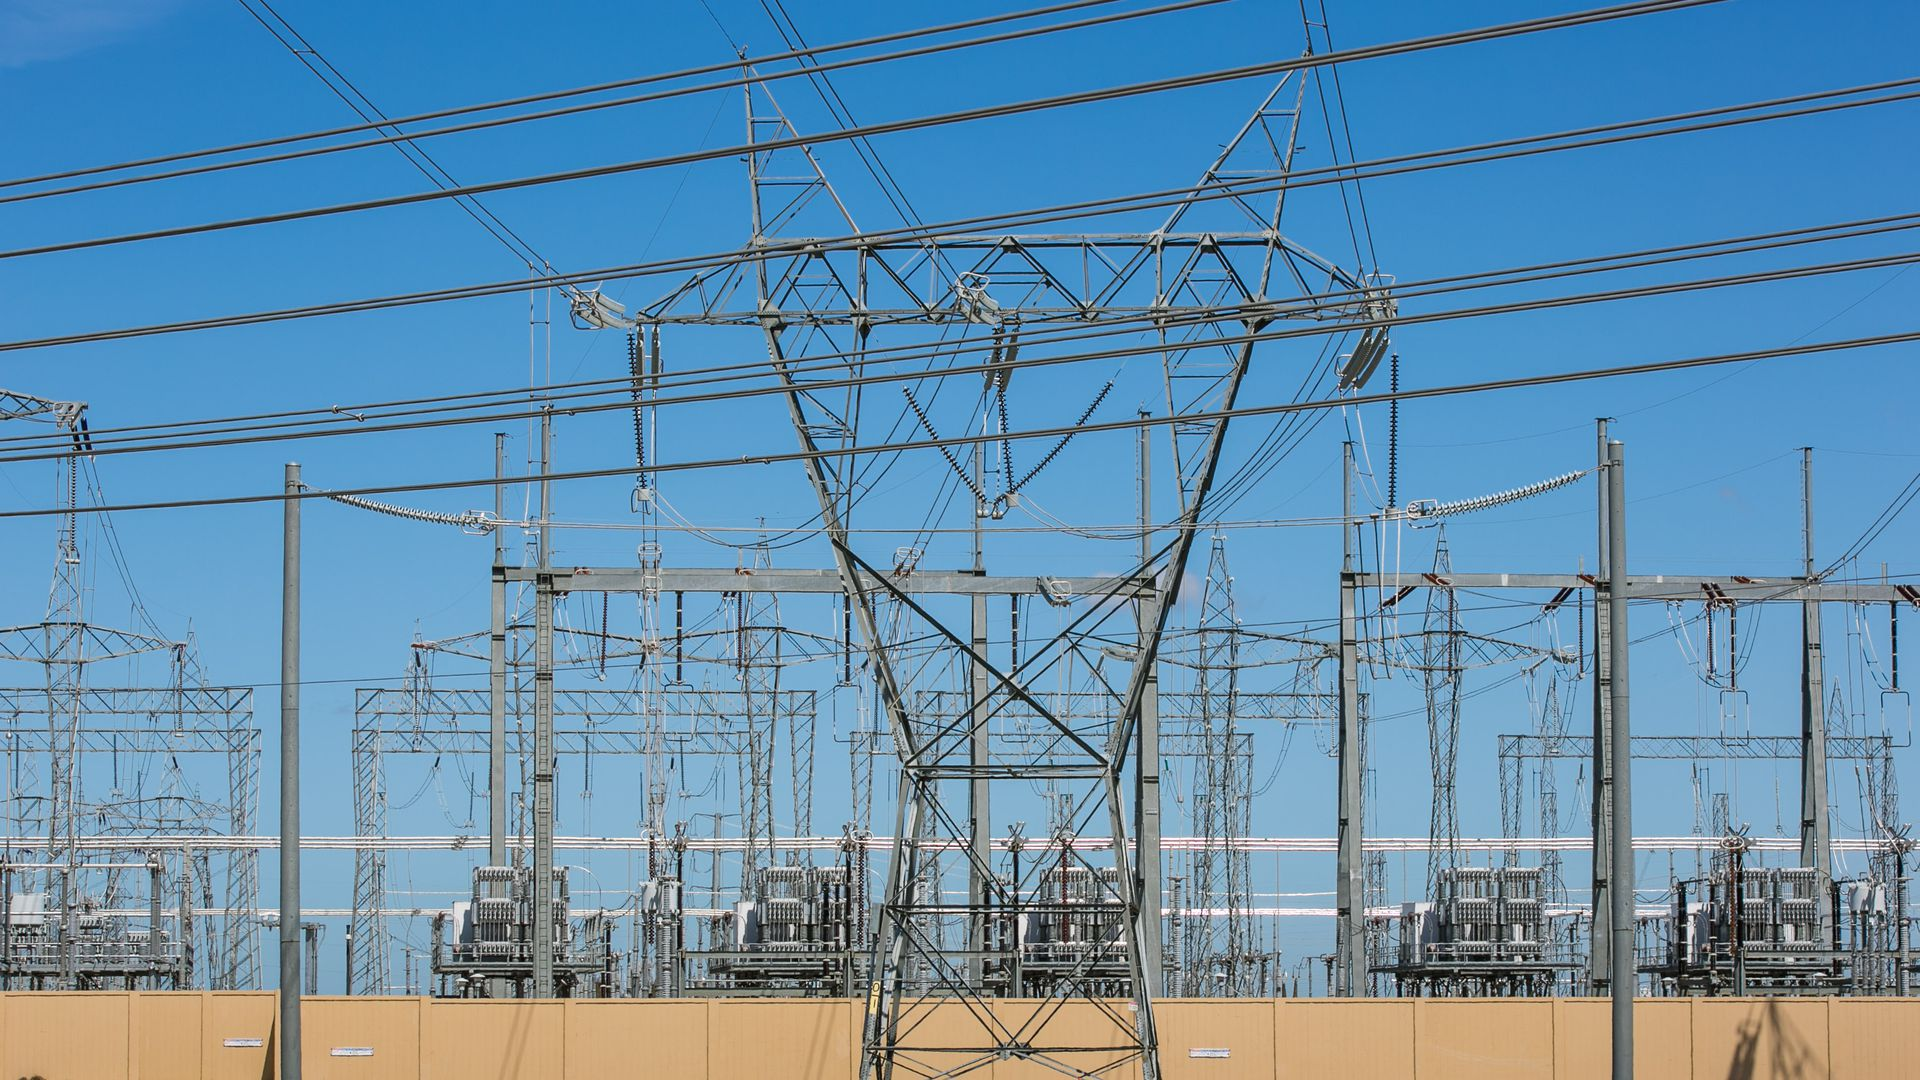 Poll Public Energy Fears At Two Decade Low Axios Overhead Transformer Wiring Diagram High Tension Electrical Power Lines A Transfer Station In California Photo George Rose Getty Images